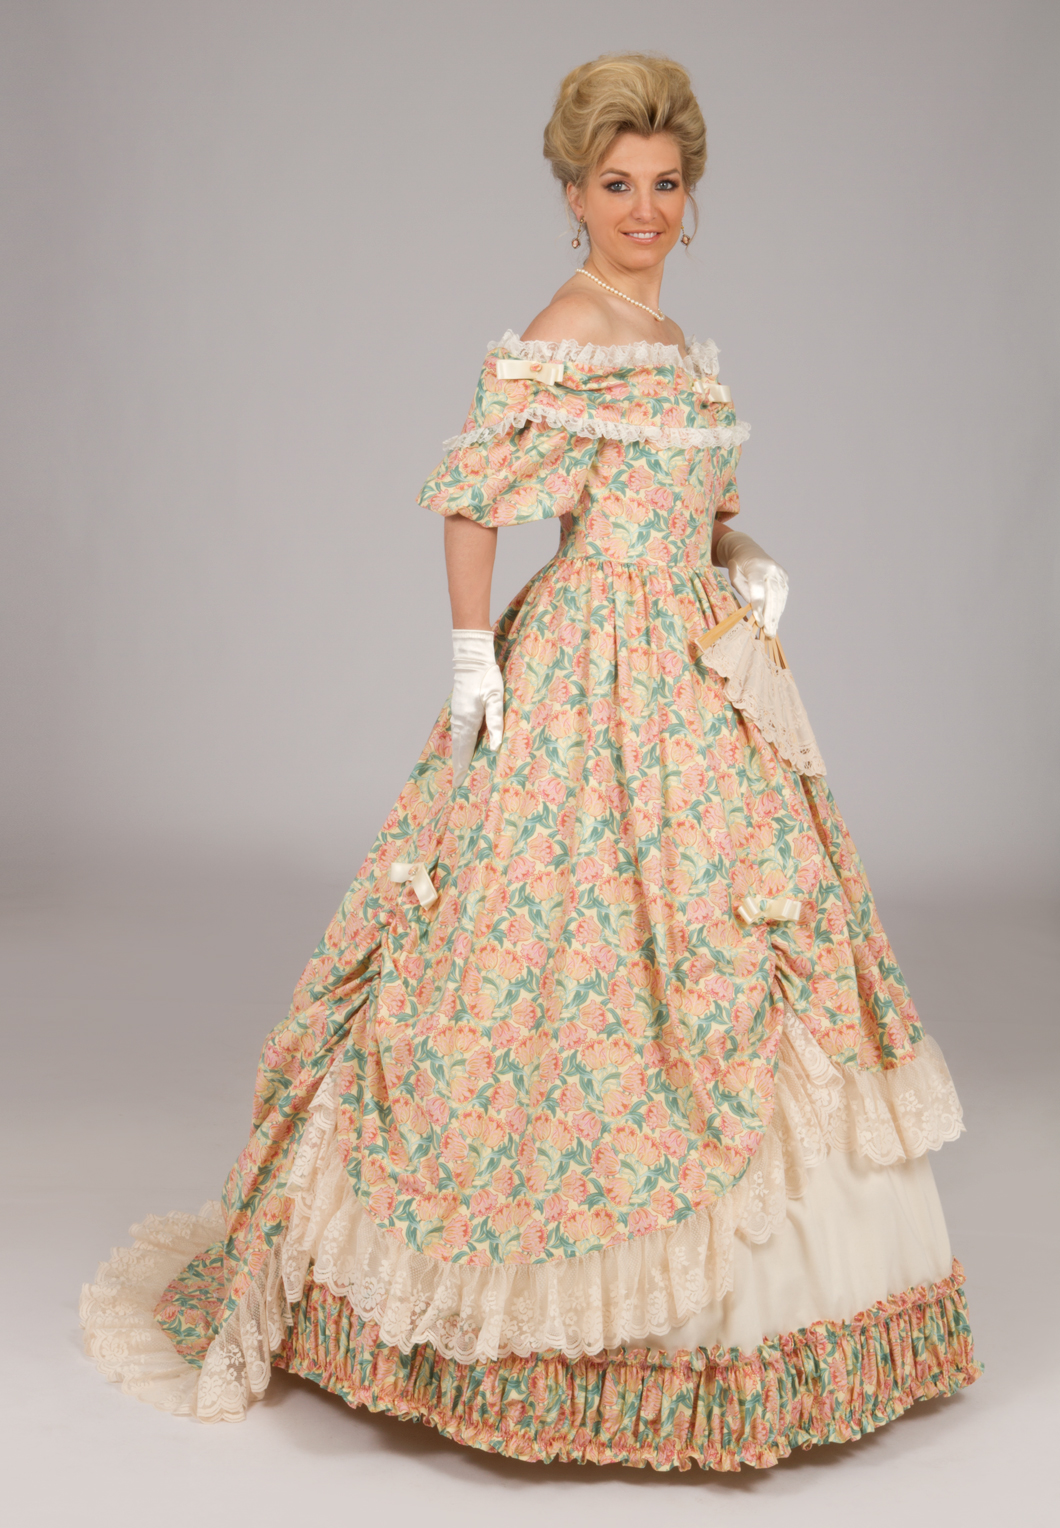 Victorian Civil War Styled Ball Gown | Recollections